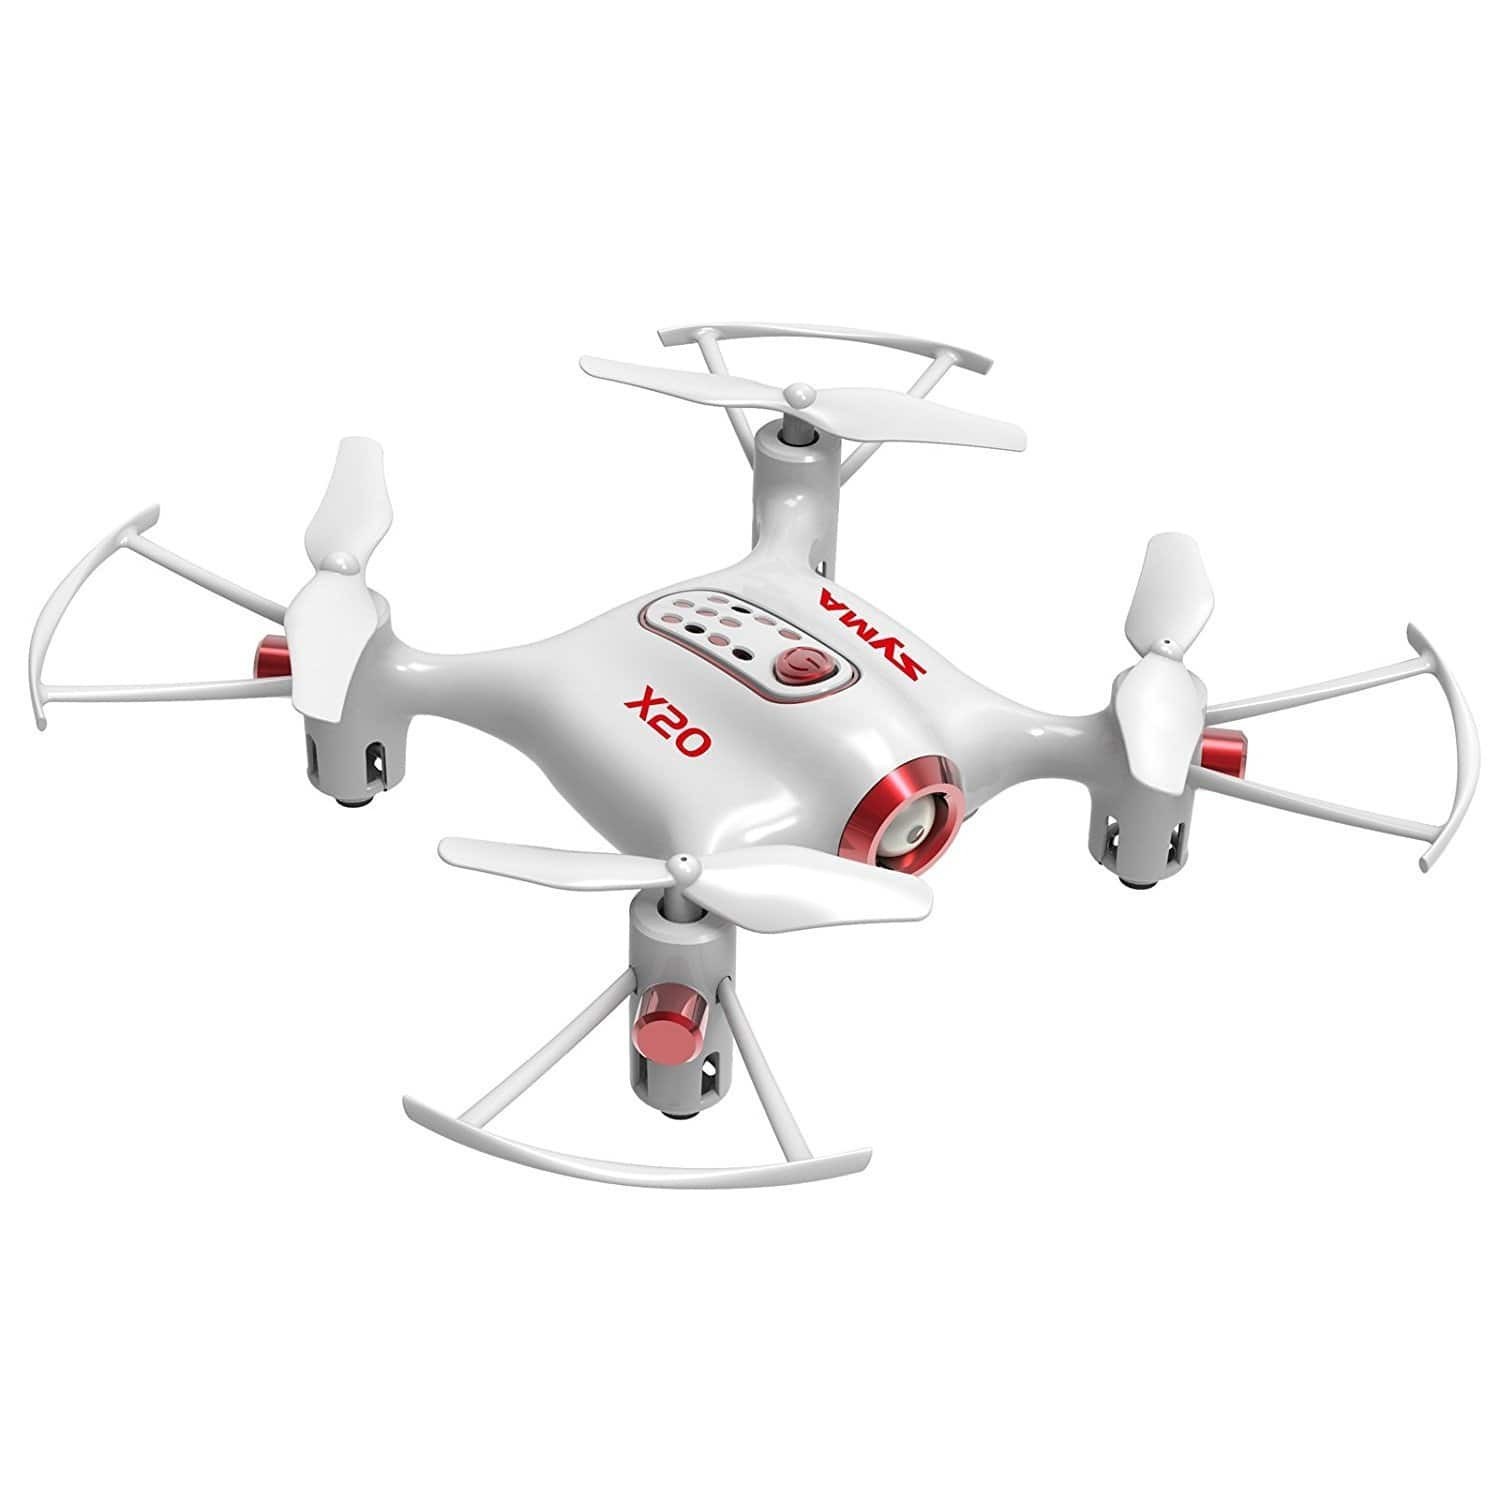 Syma X20 Pocket Drone $16 Free Shipping with Prime